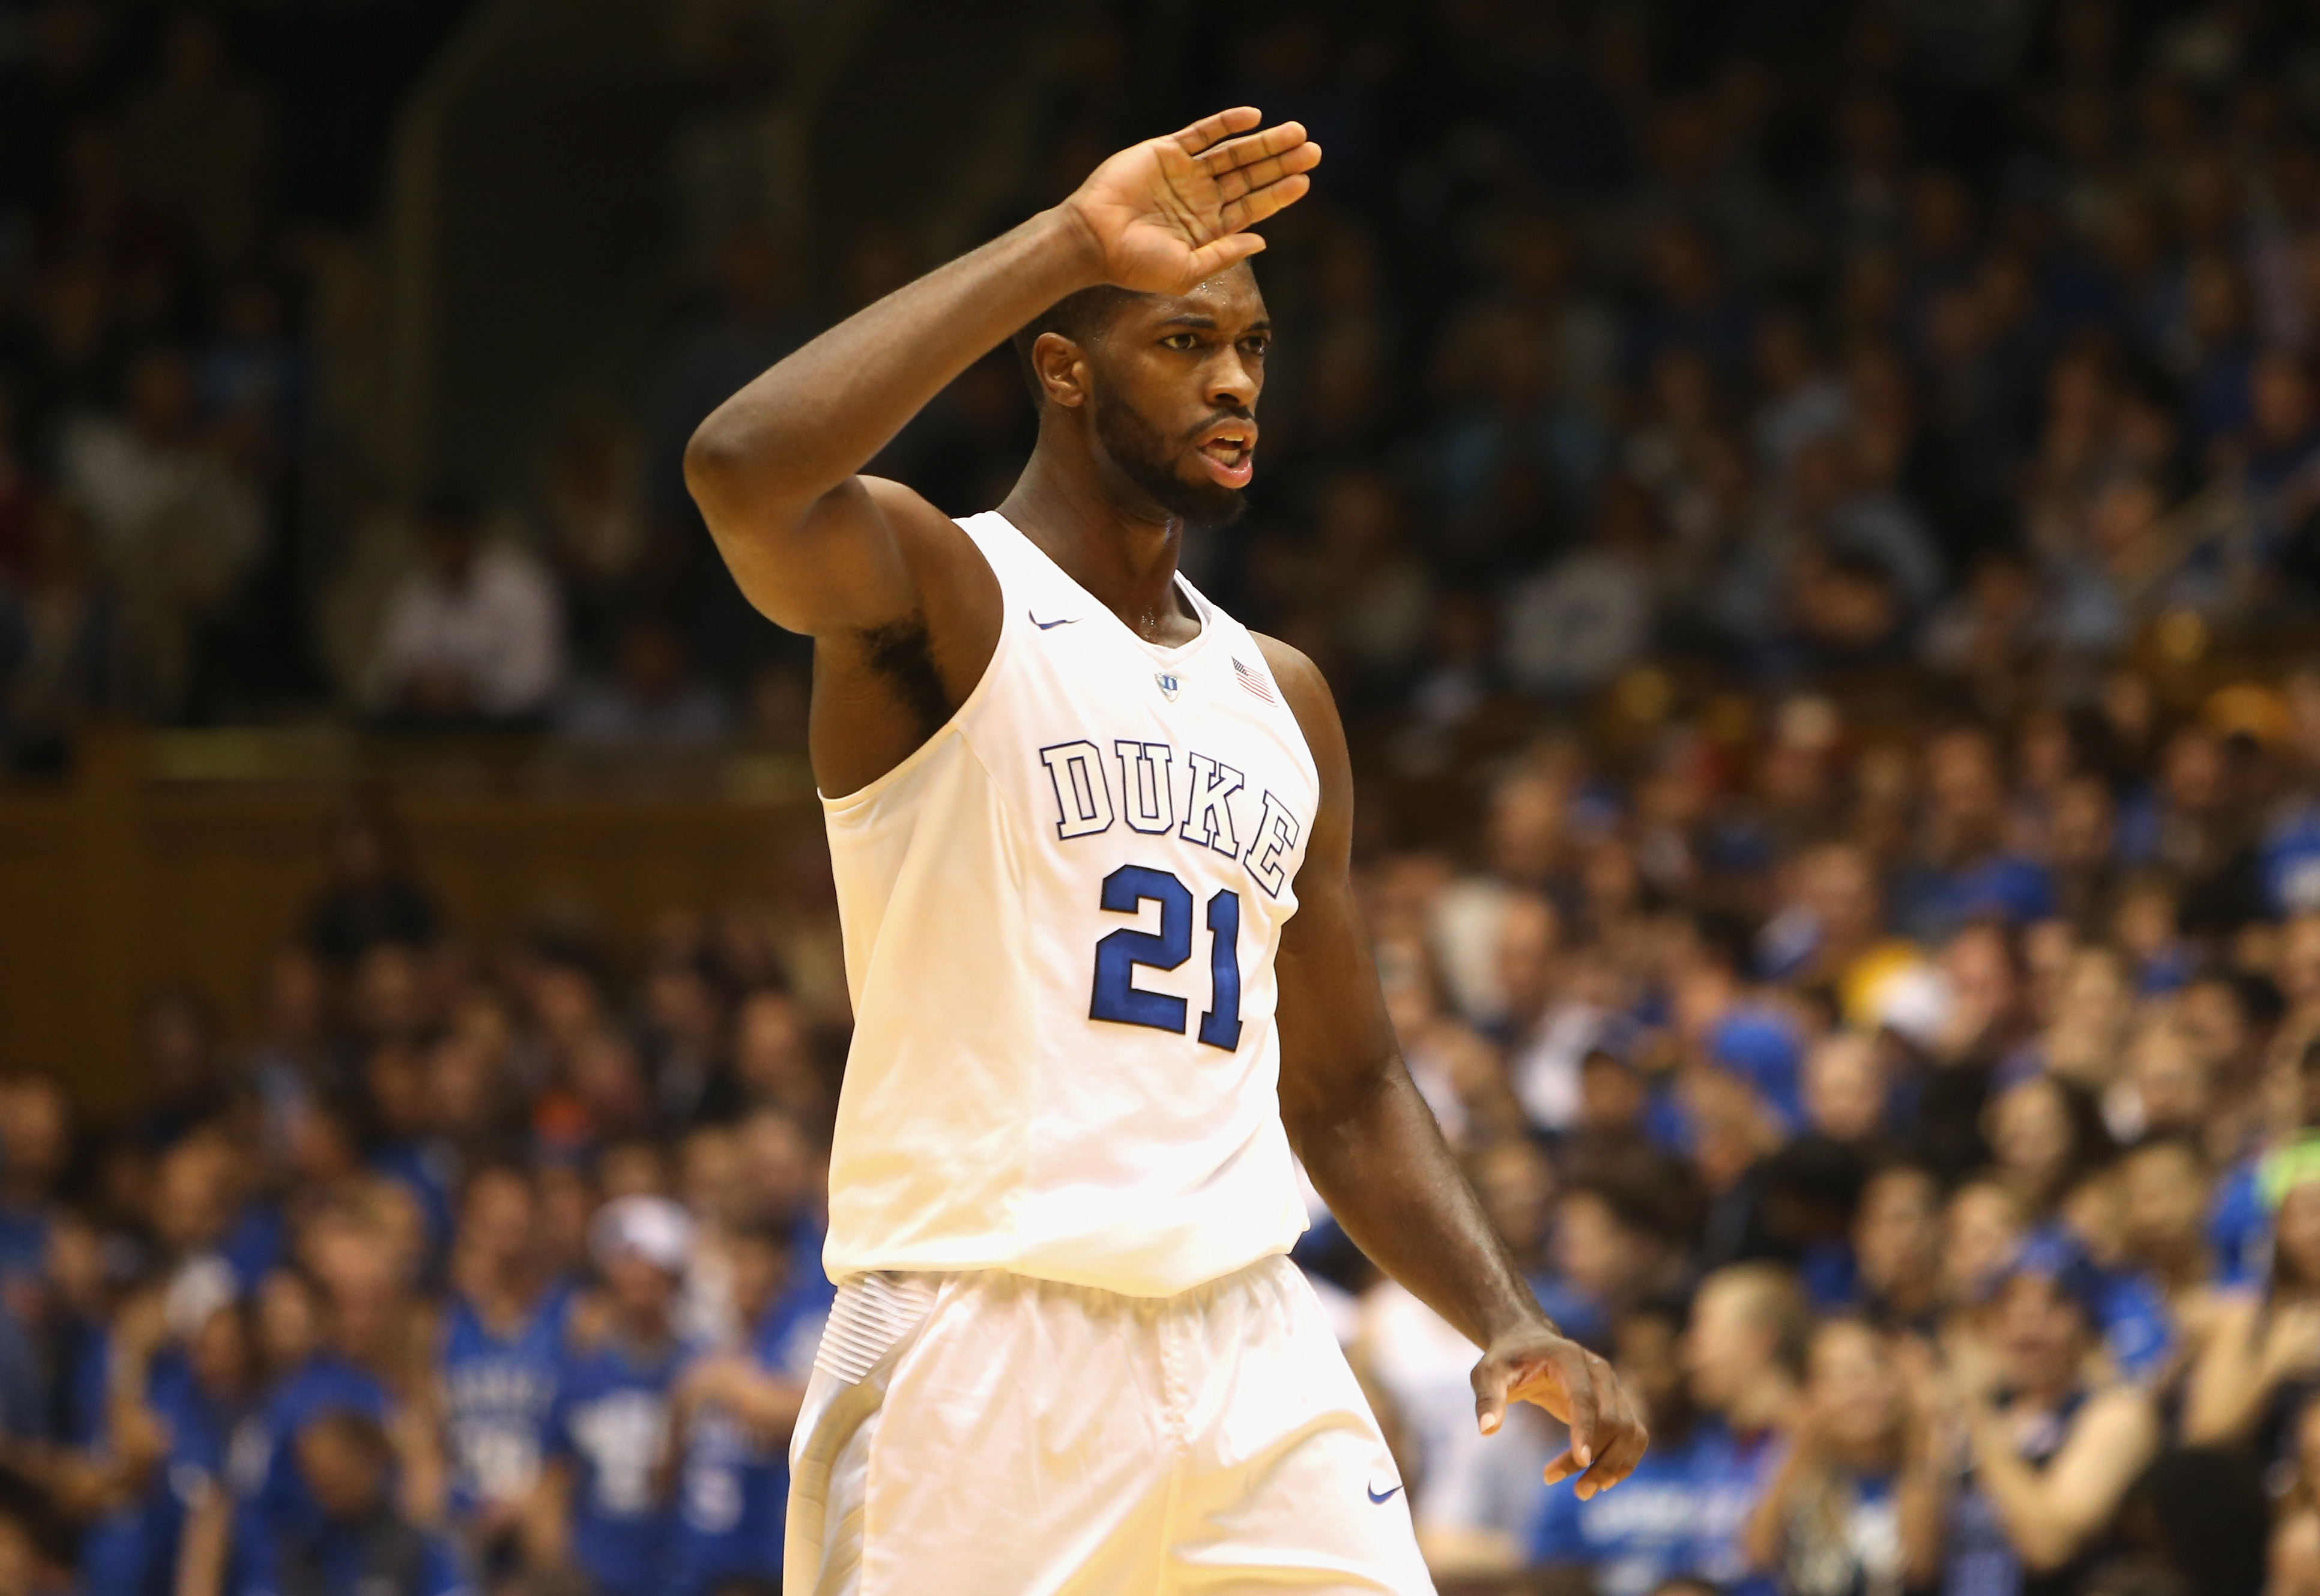 DURHAM, NC - NOVEMBER 13: Amile Jefferson #21 of the Duke Blue Devils during their game at Cameron Indoor Stadium on November 13, 2015 in Durham, North Carolina. (Photo by Streeter Lecka/Getty Images)